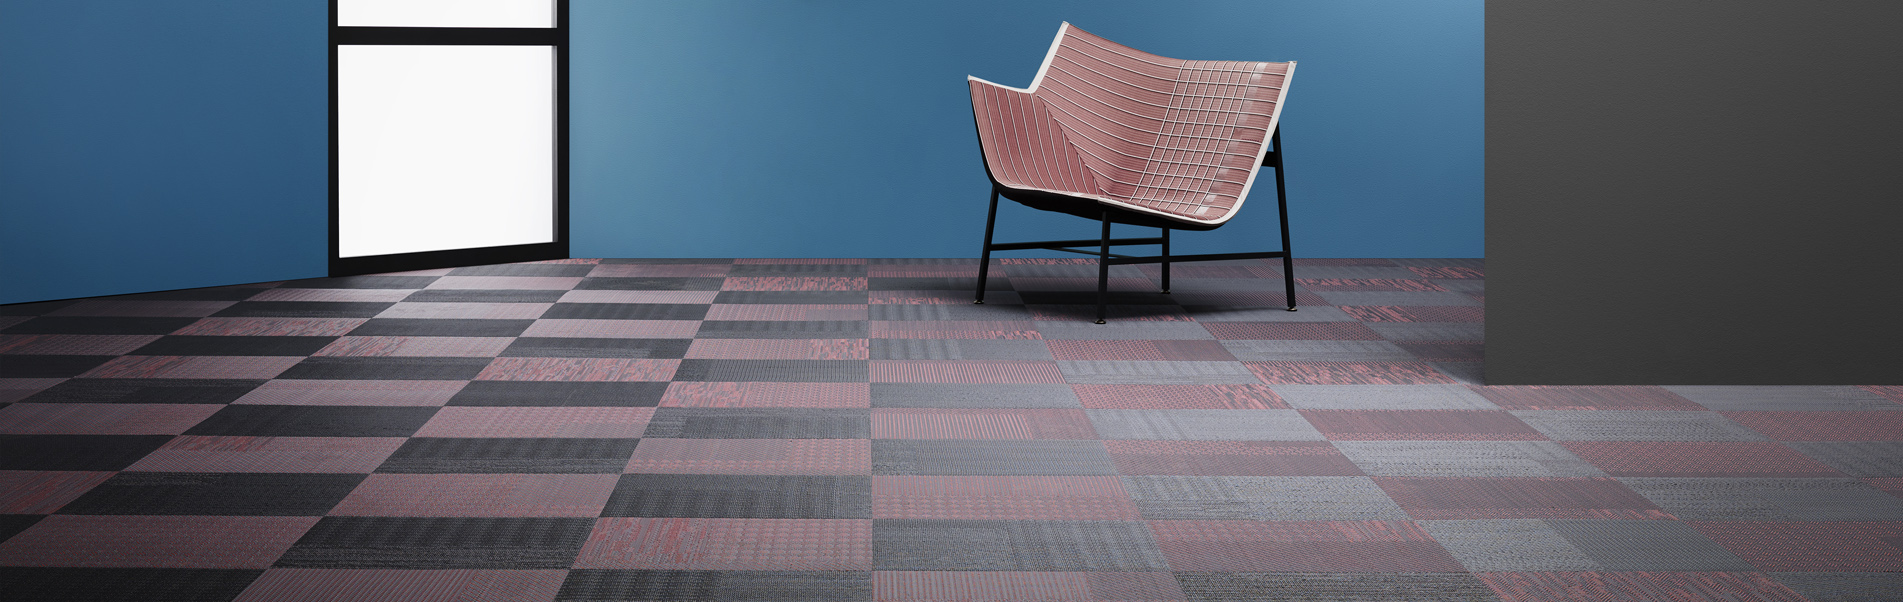 BOLON By You Tile Field - Gallery